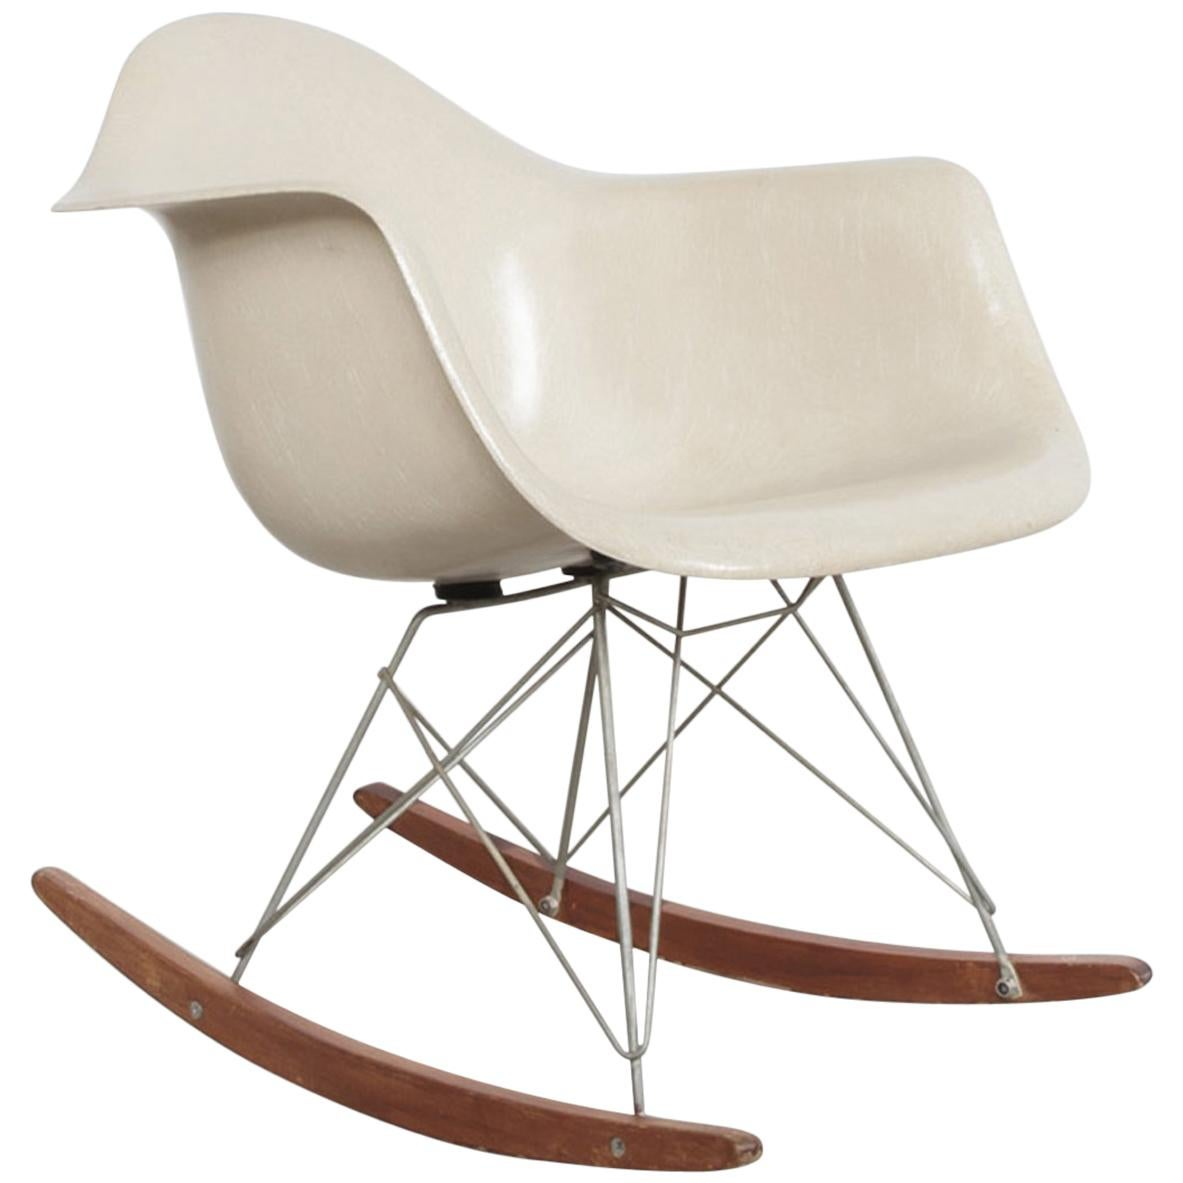 Eames Rar Charles And Ray Eames Rar Rocking Chair 1960s